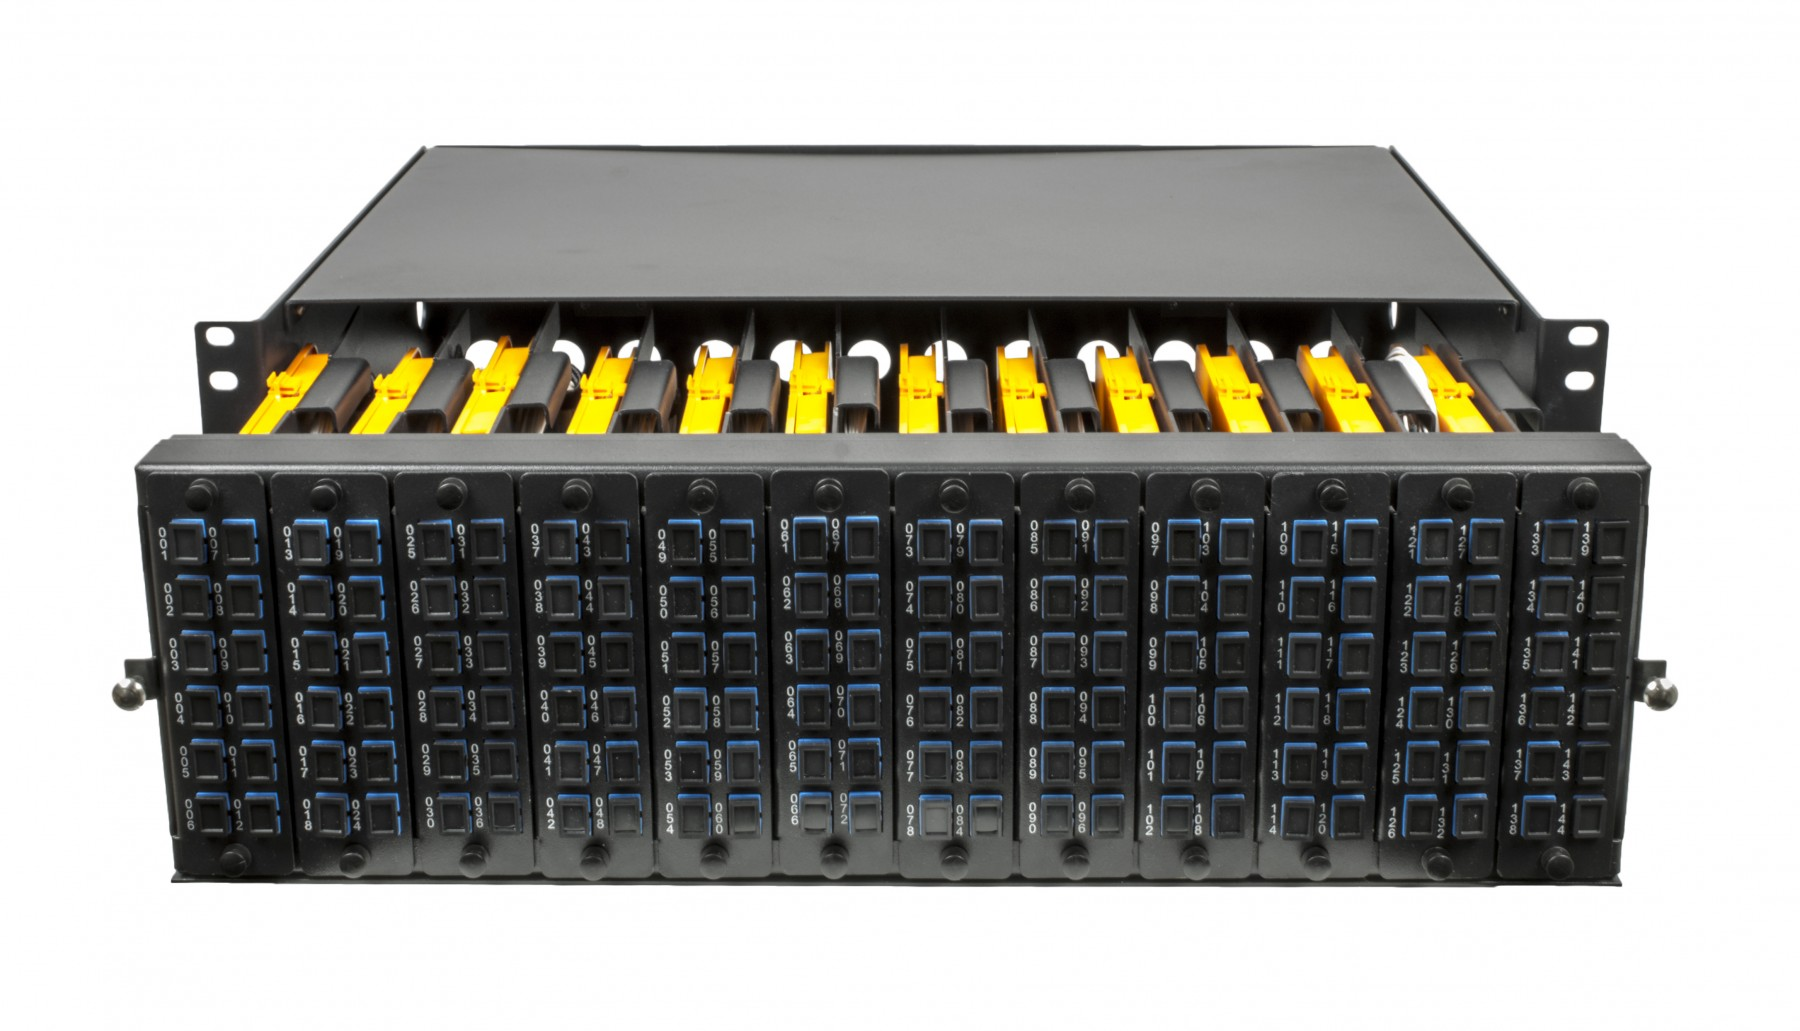 Lc 288 Fibre Mgx Modular Patch Panel 3u Odf